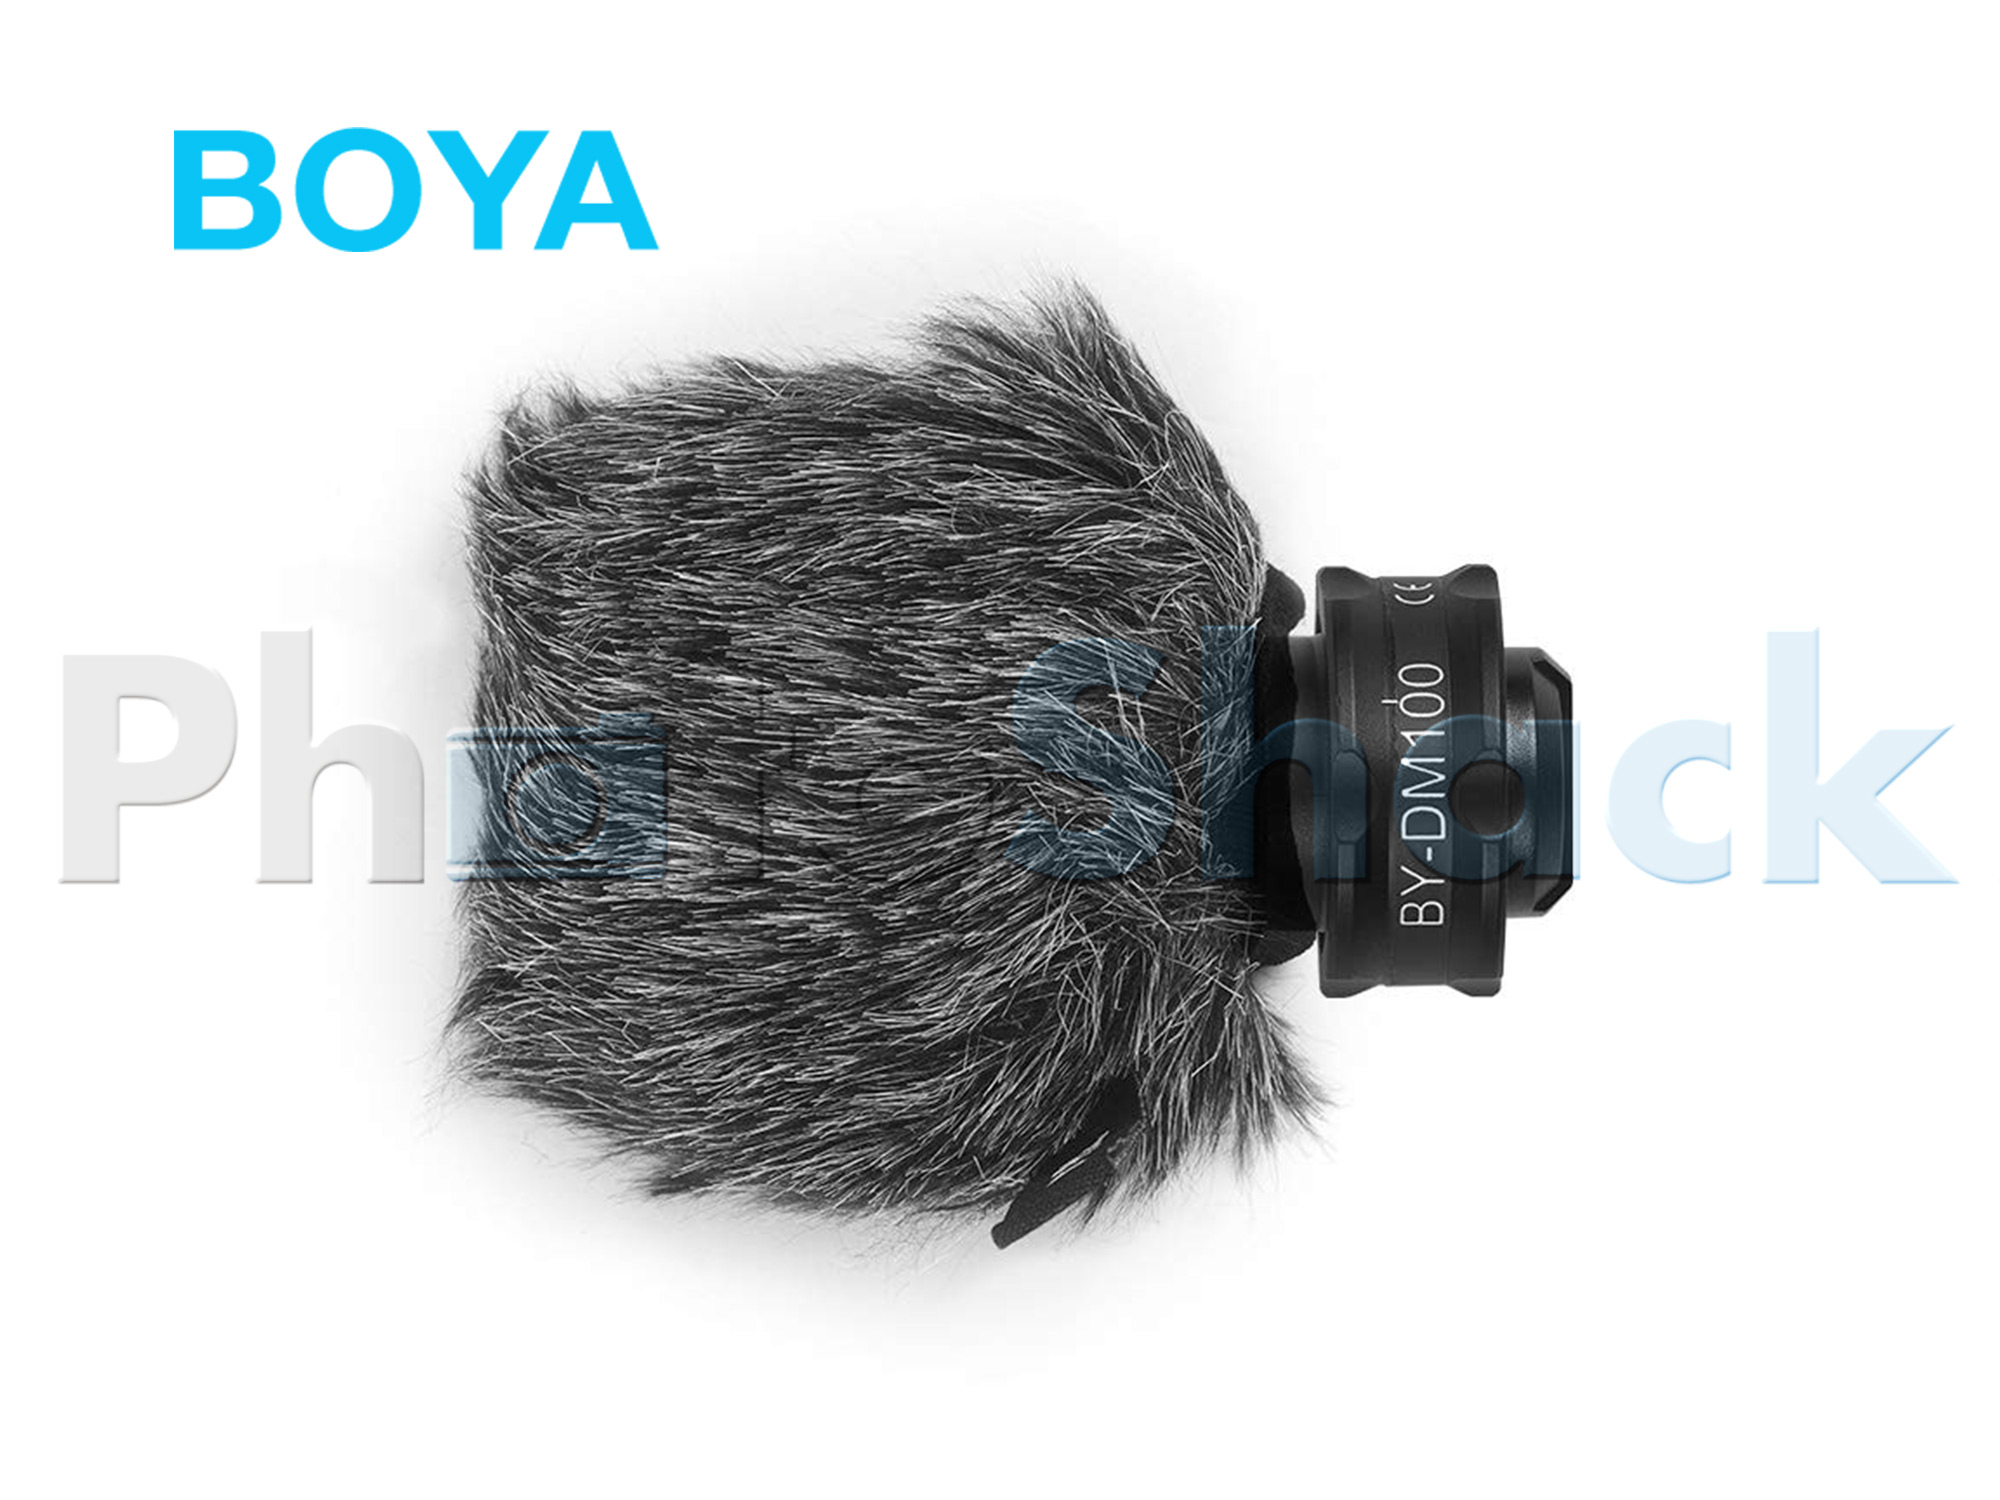 Boya Type-C Shotgun microphone (for Android devices)